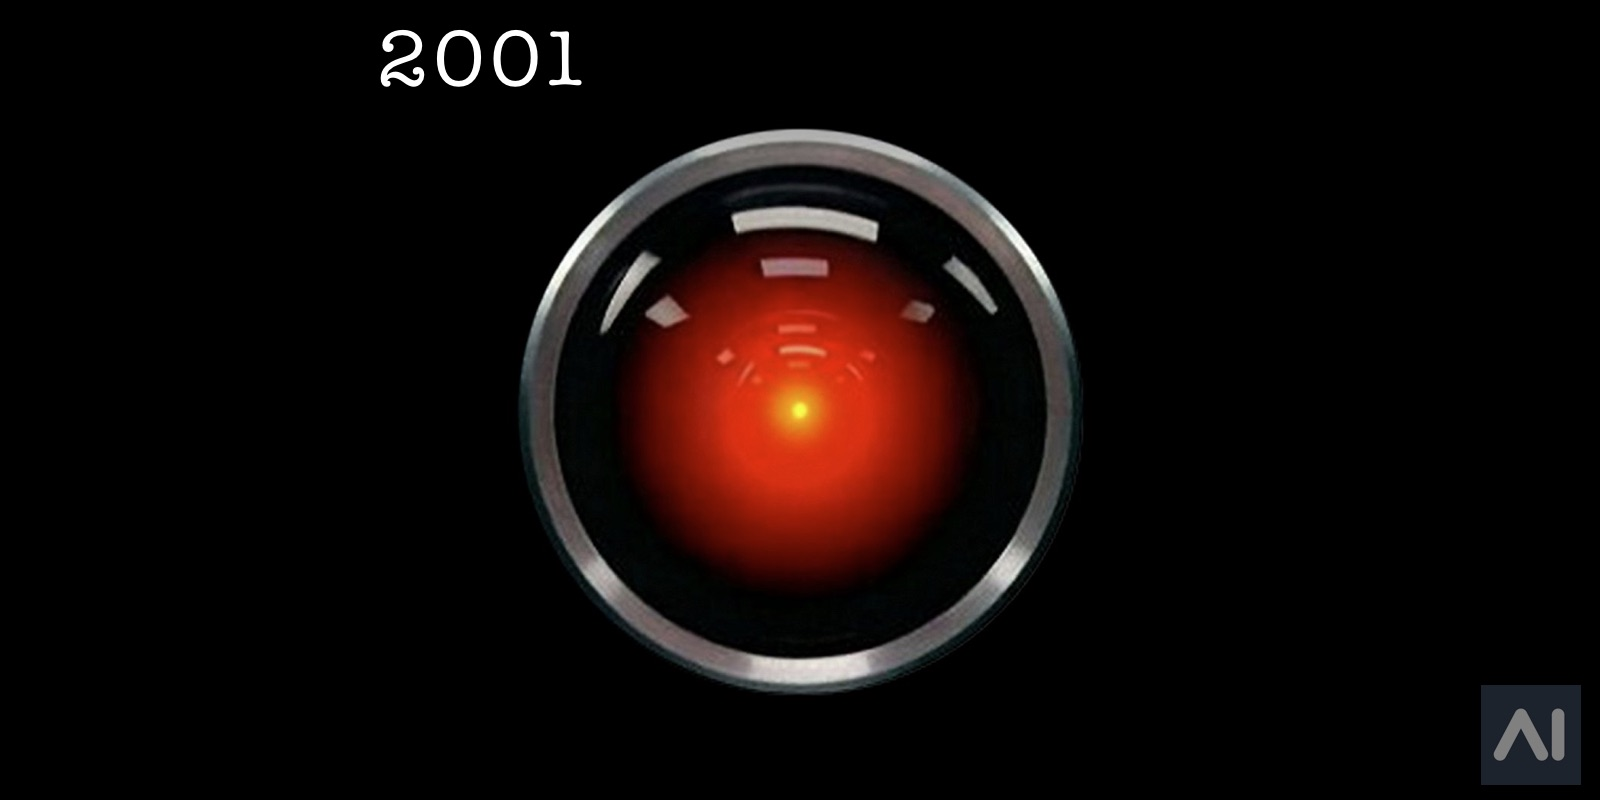 Space Odyssey 2001: An Ode to Stanley Kubrik's Masterpiece - HAL 9000